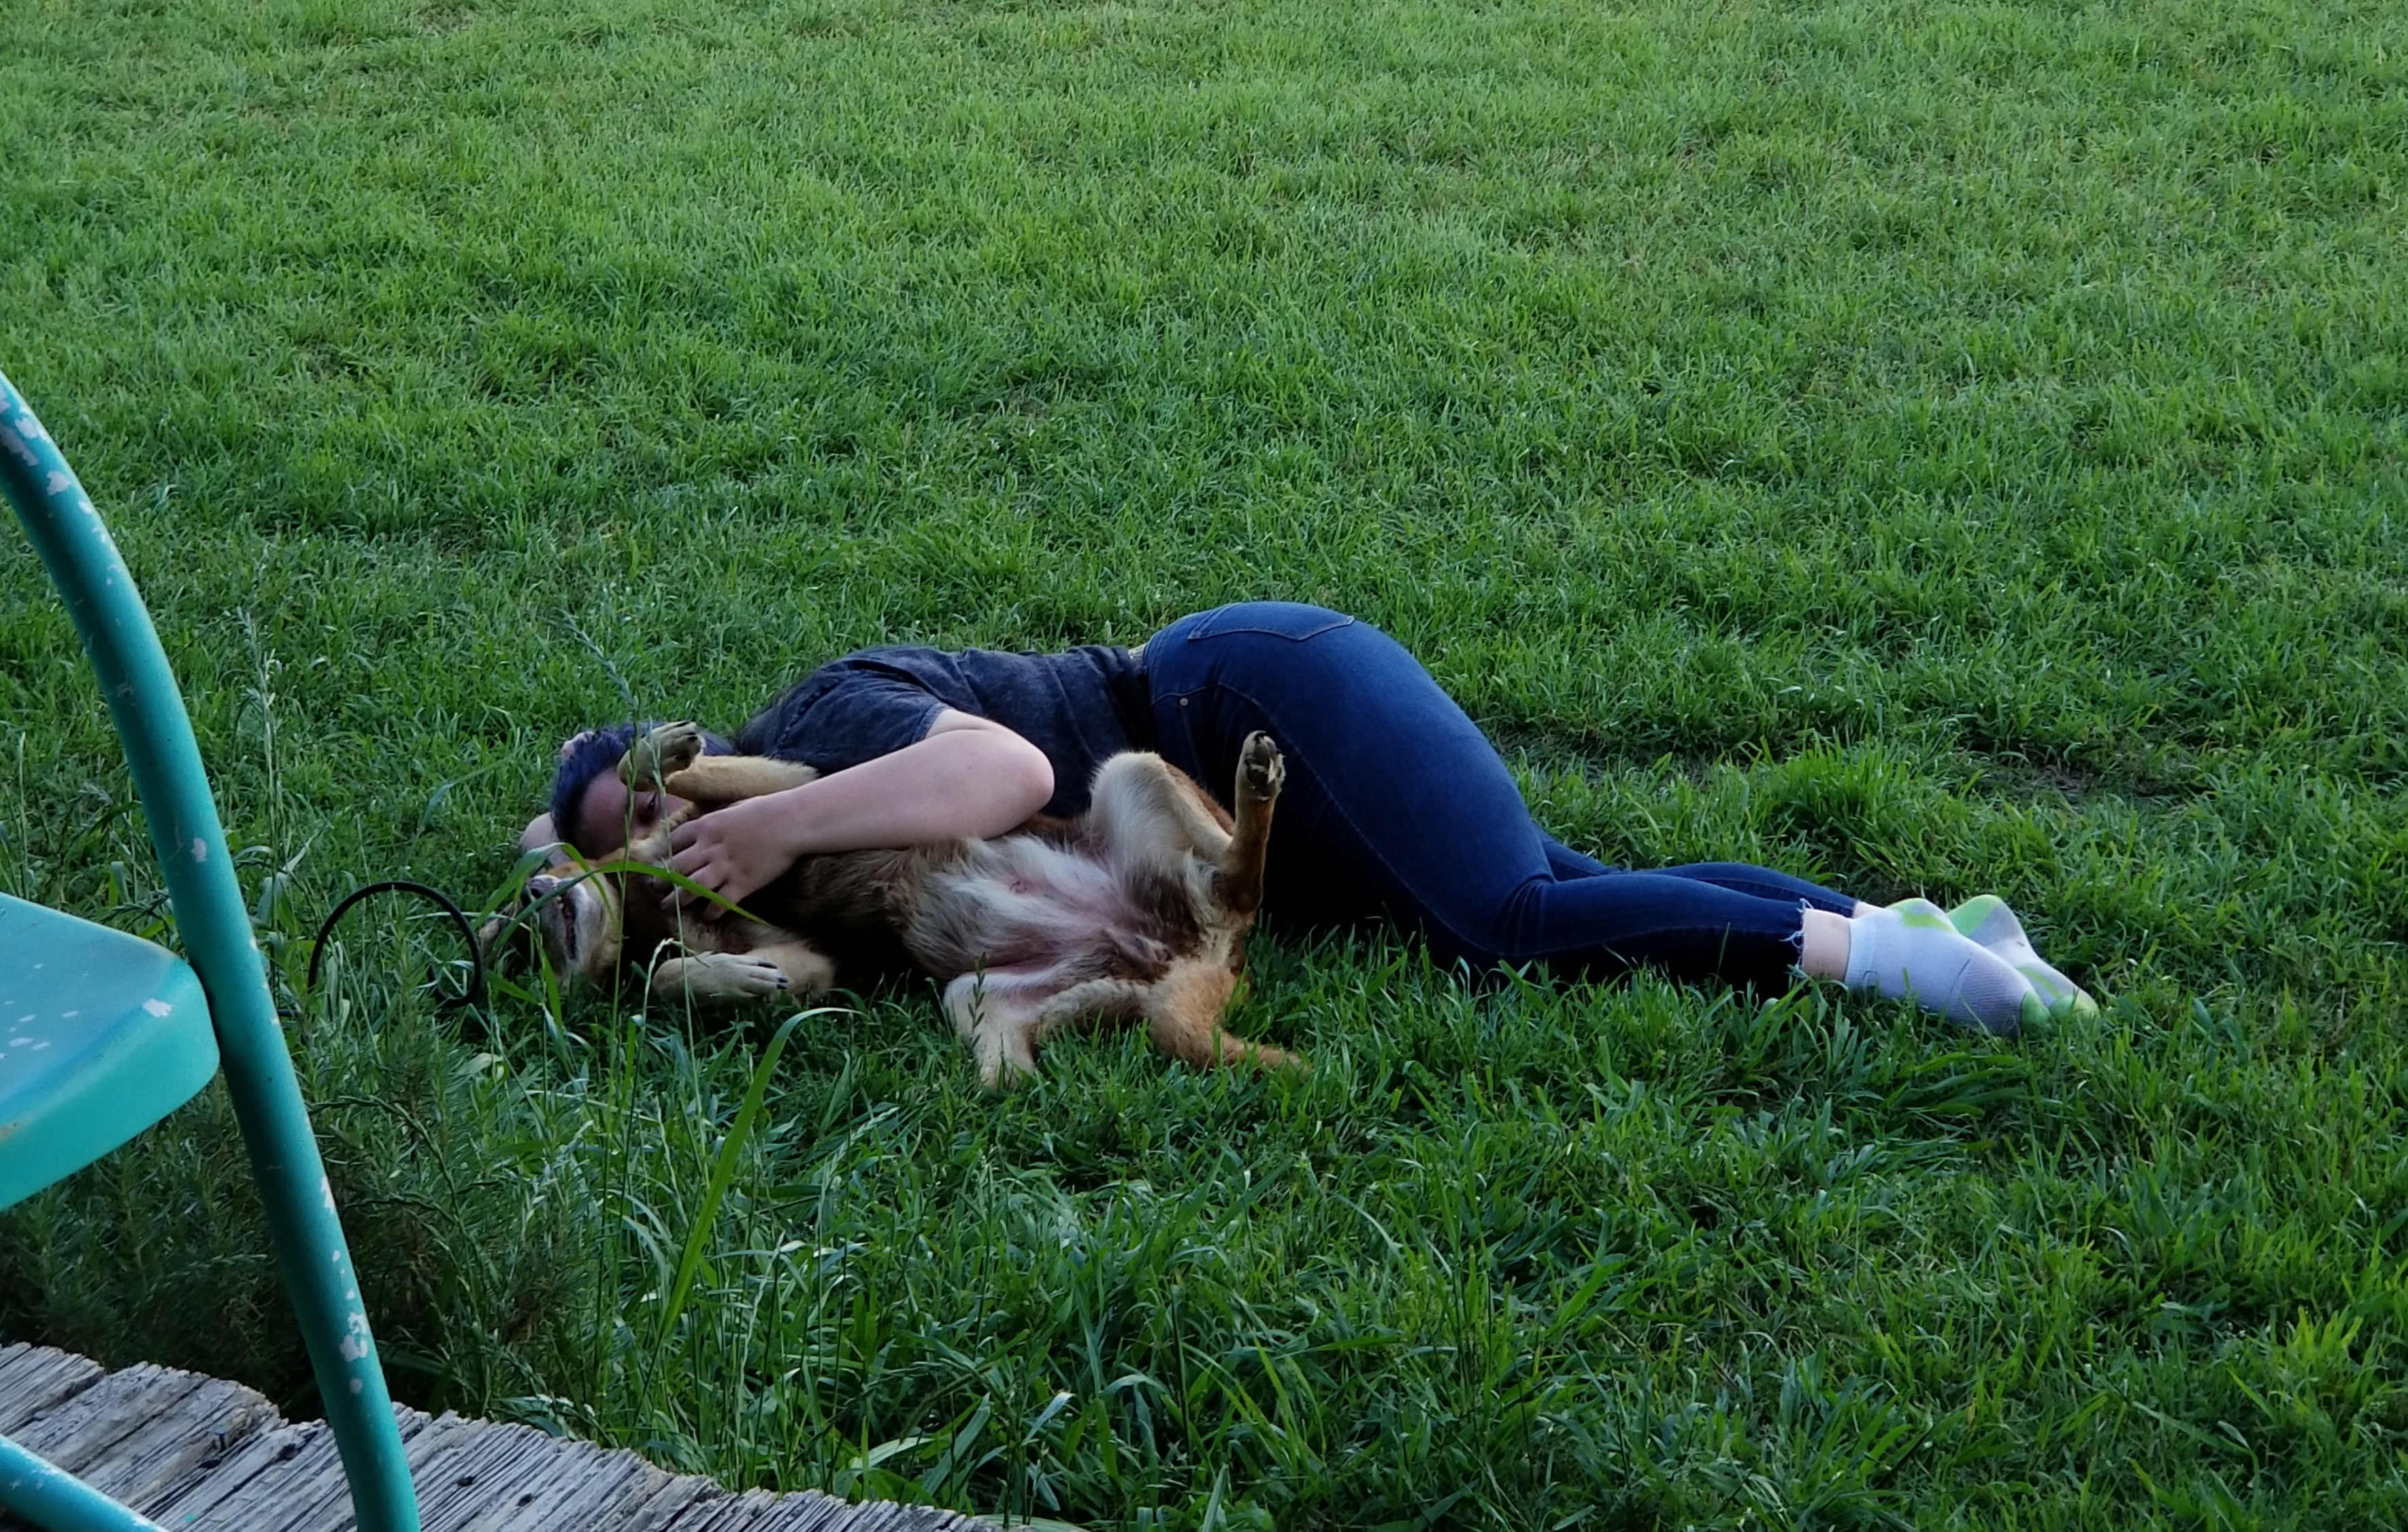 Just a girl snuggling a puppy!